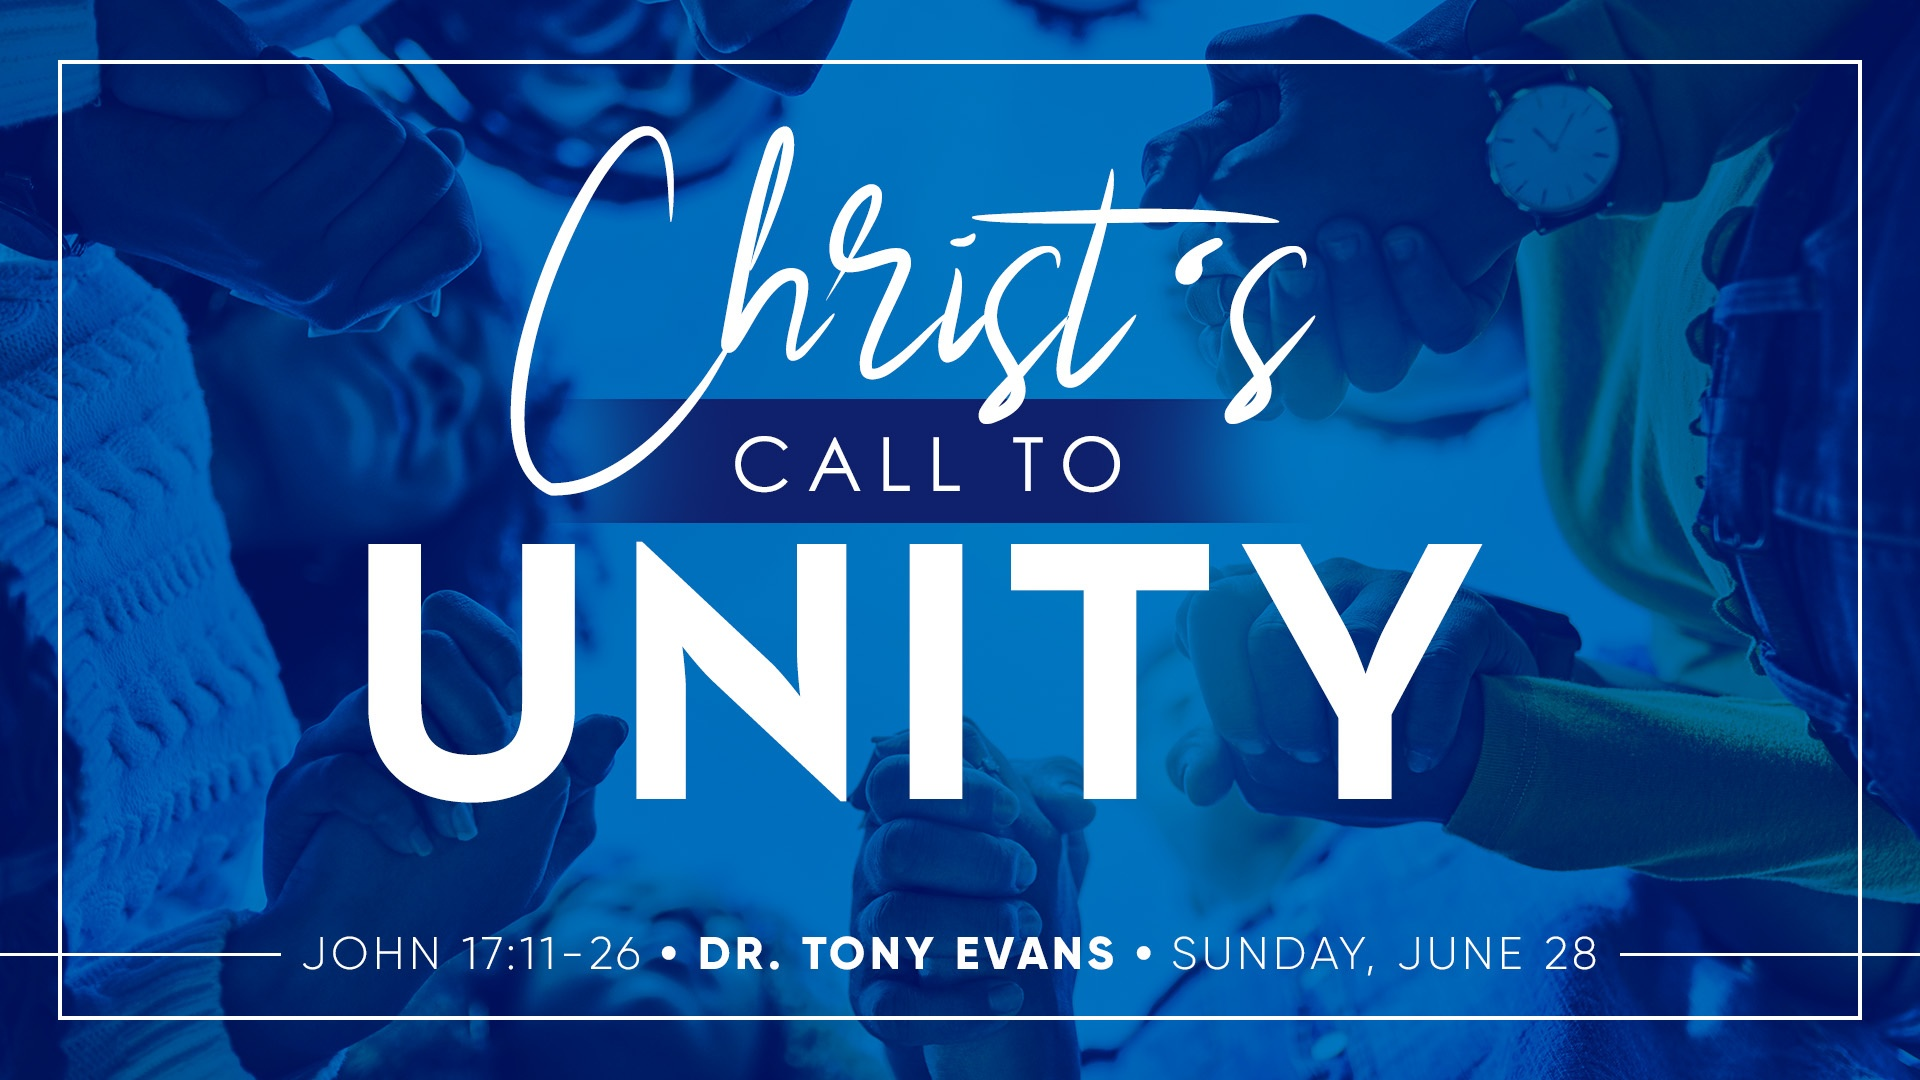 Group of people holding hands in a circle with the text Christ's Call to Unity by Dr. Tony Evans